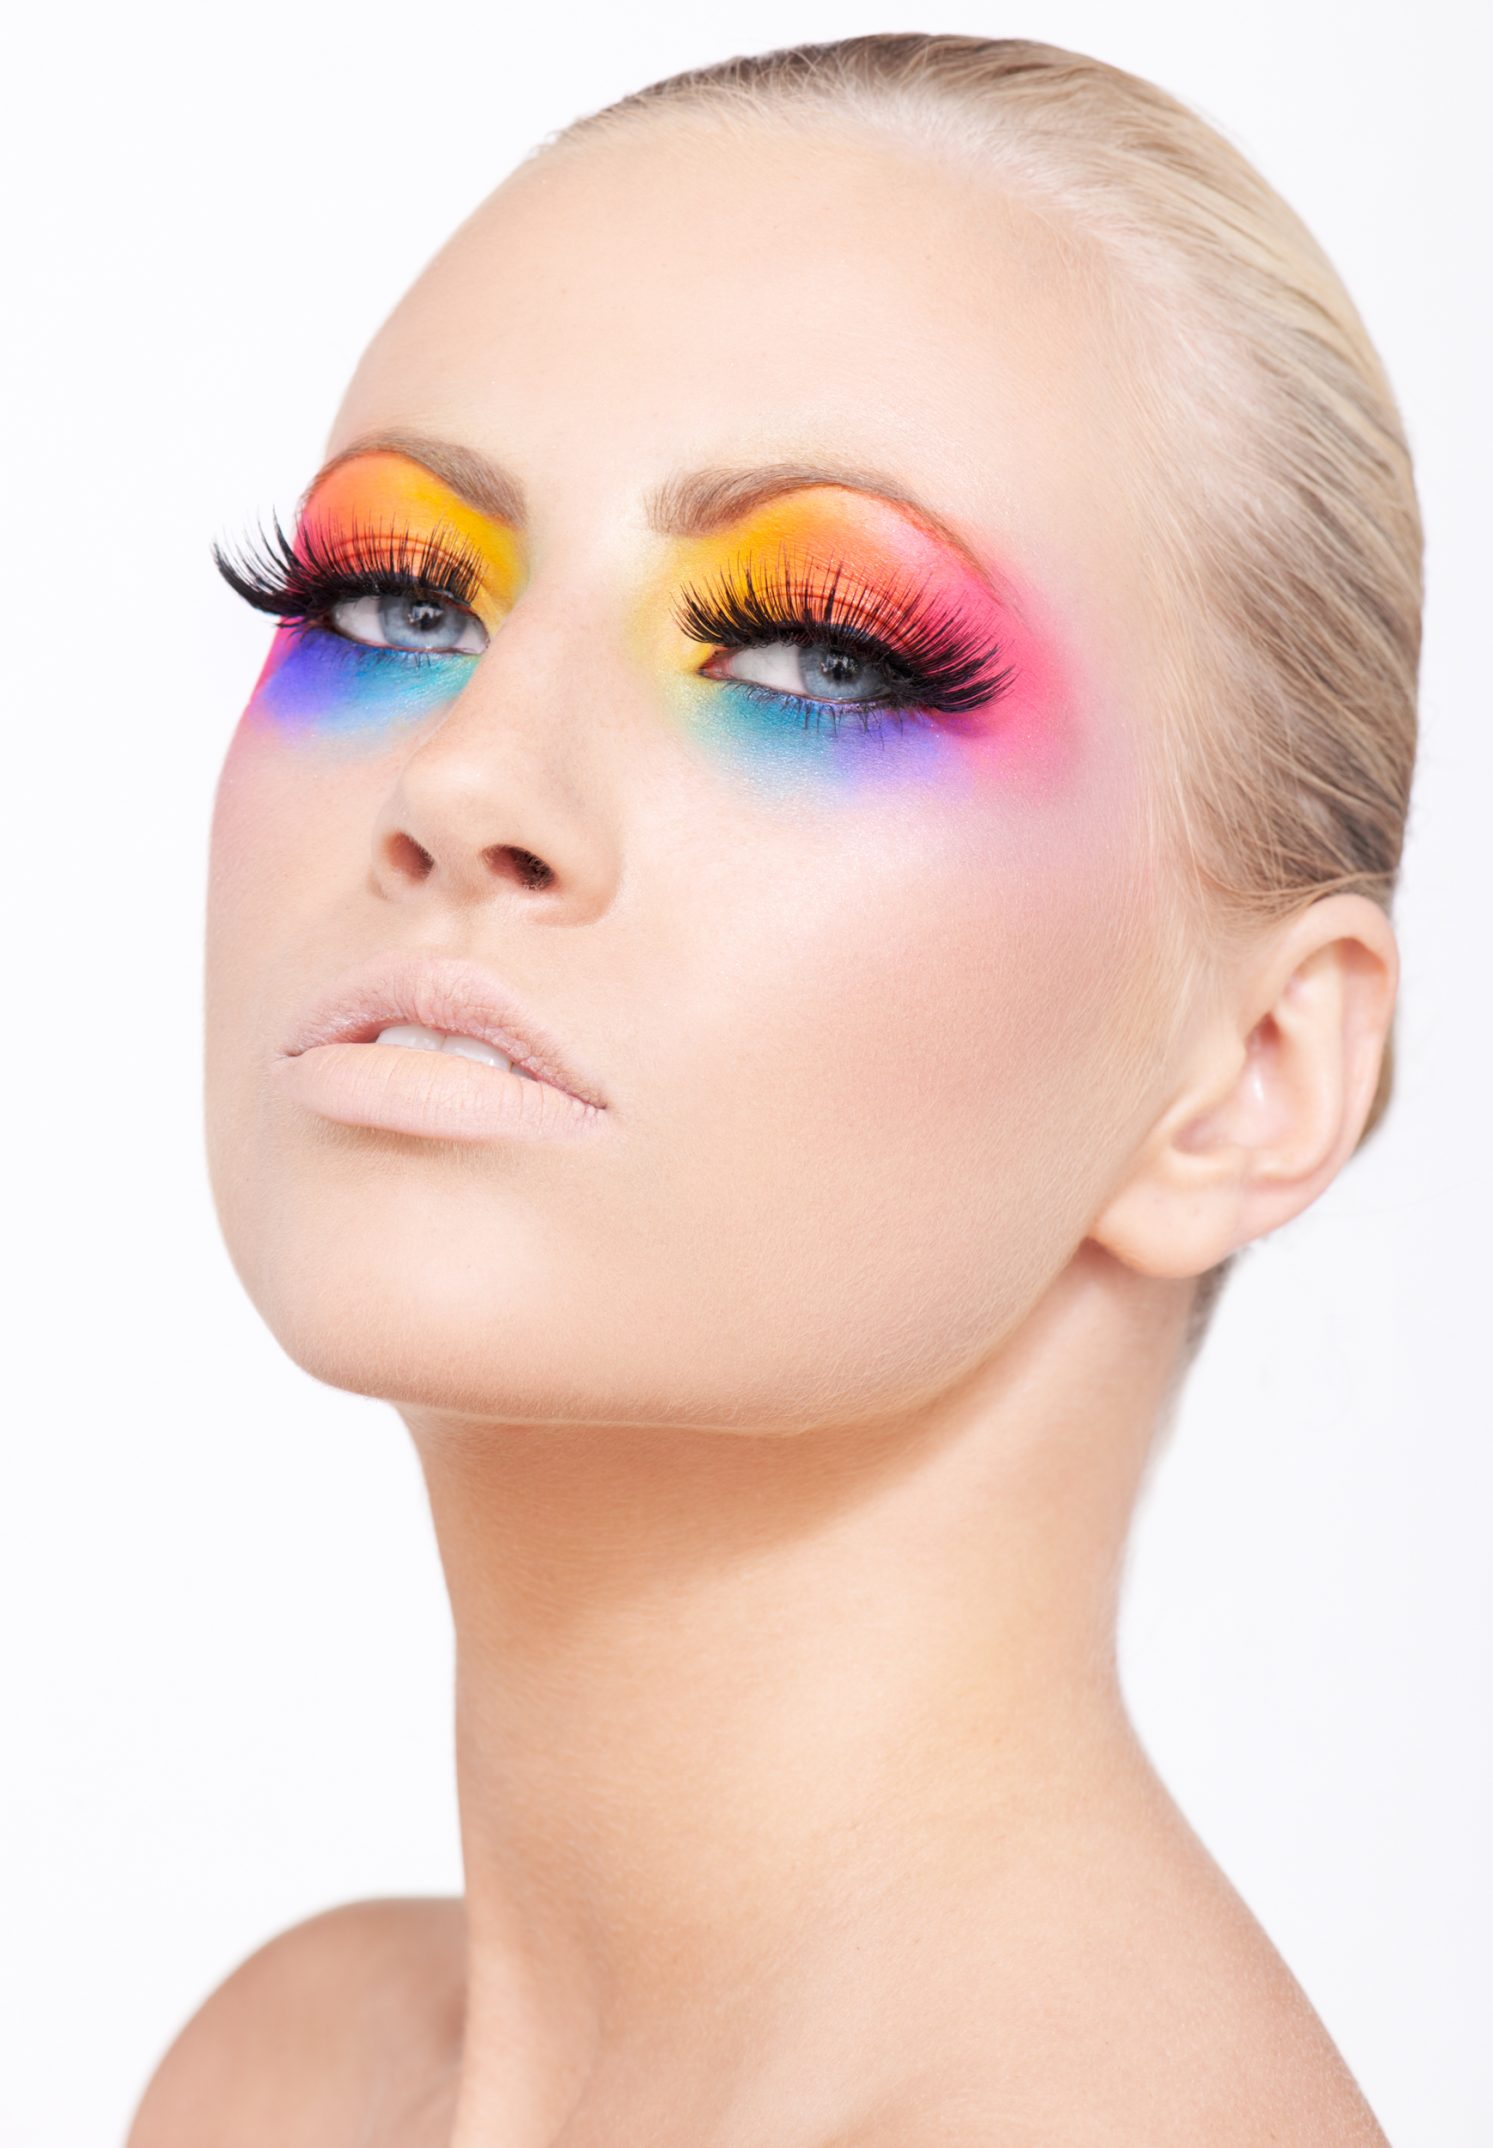 Iben Juel Nielsen fotograf christian grüner farverig make-up beauty colorful